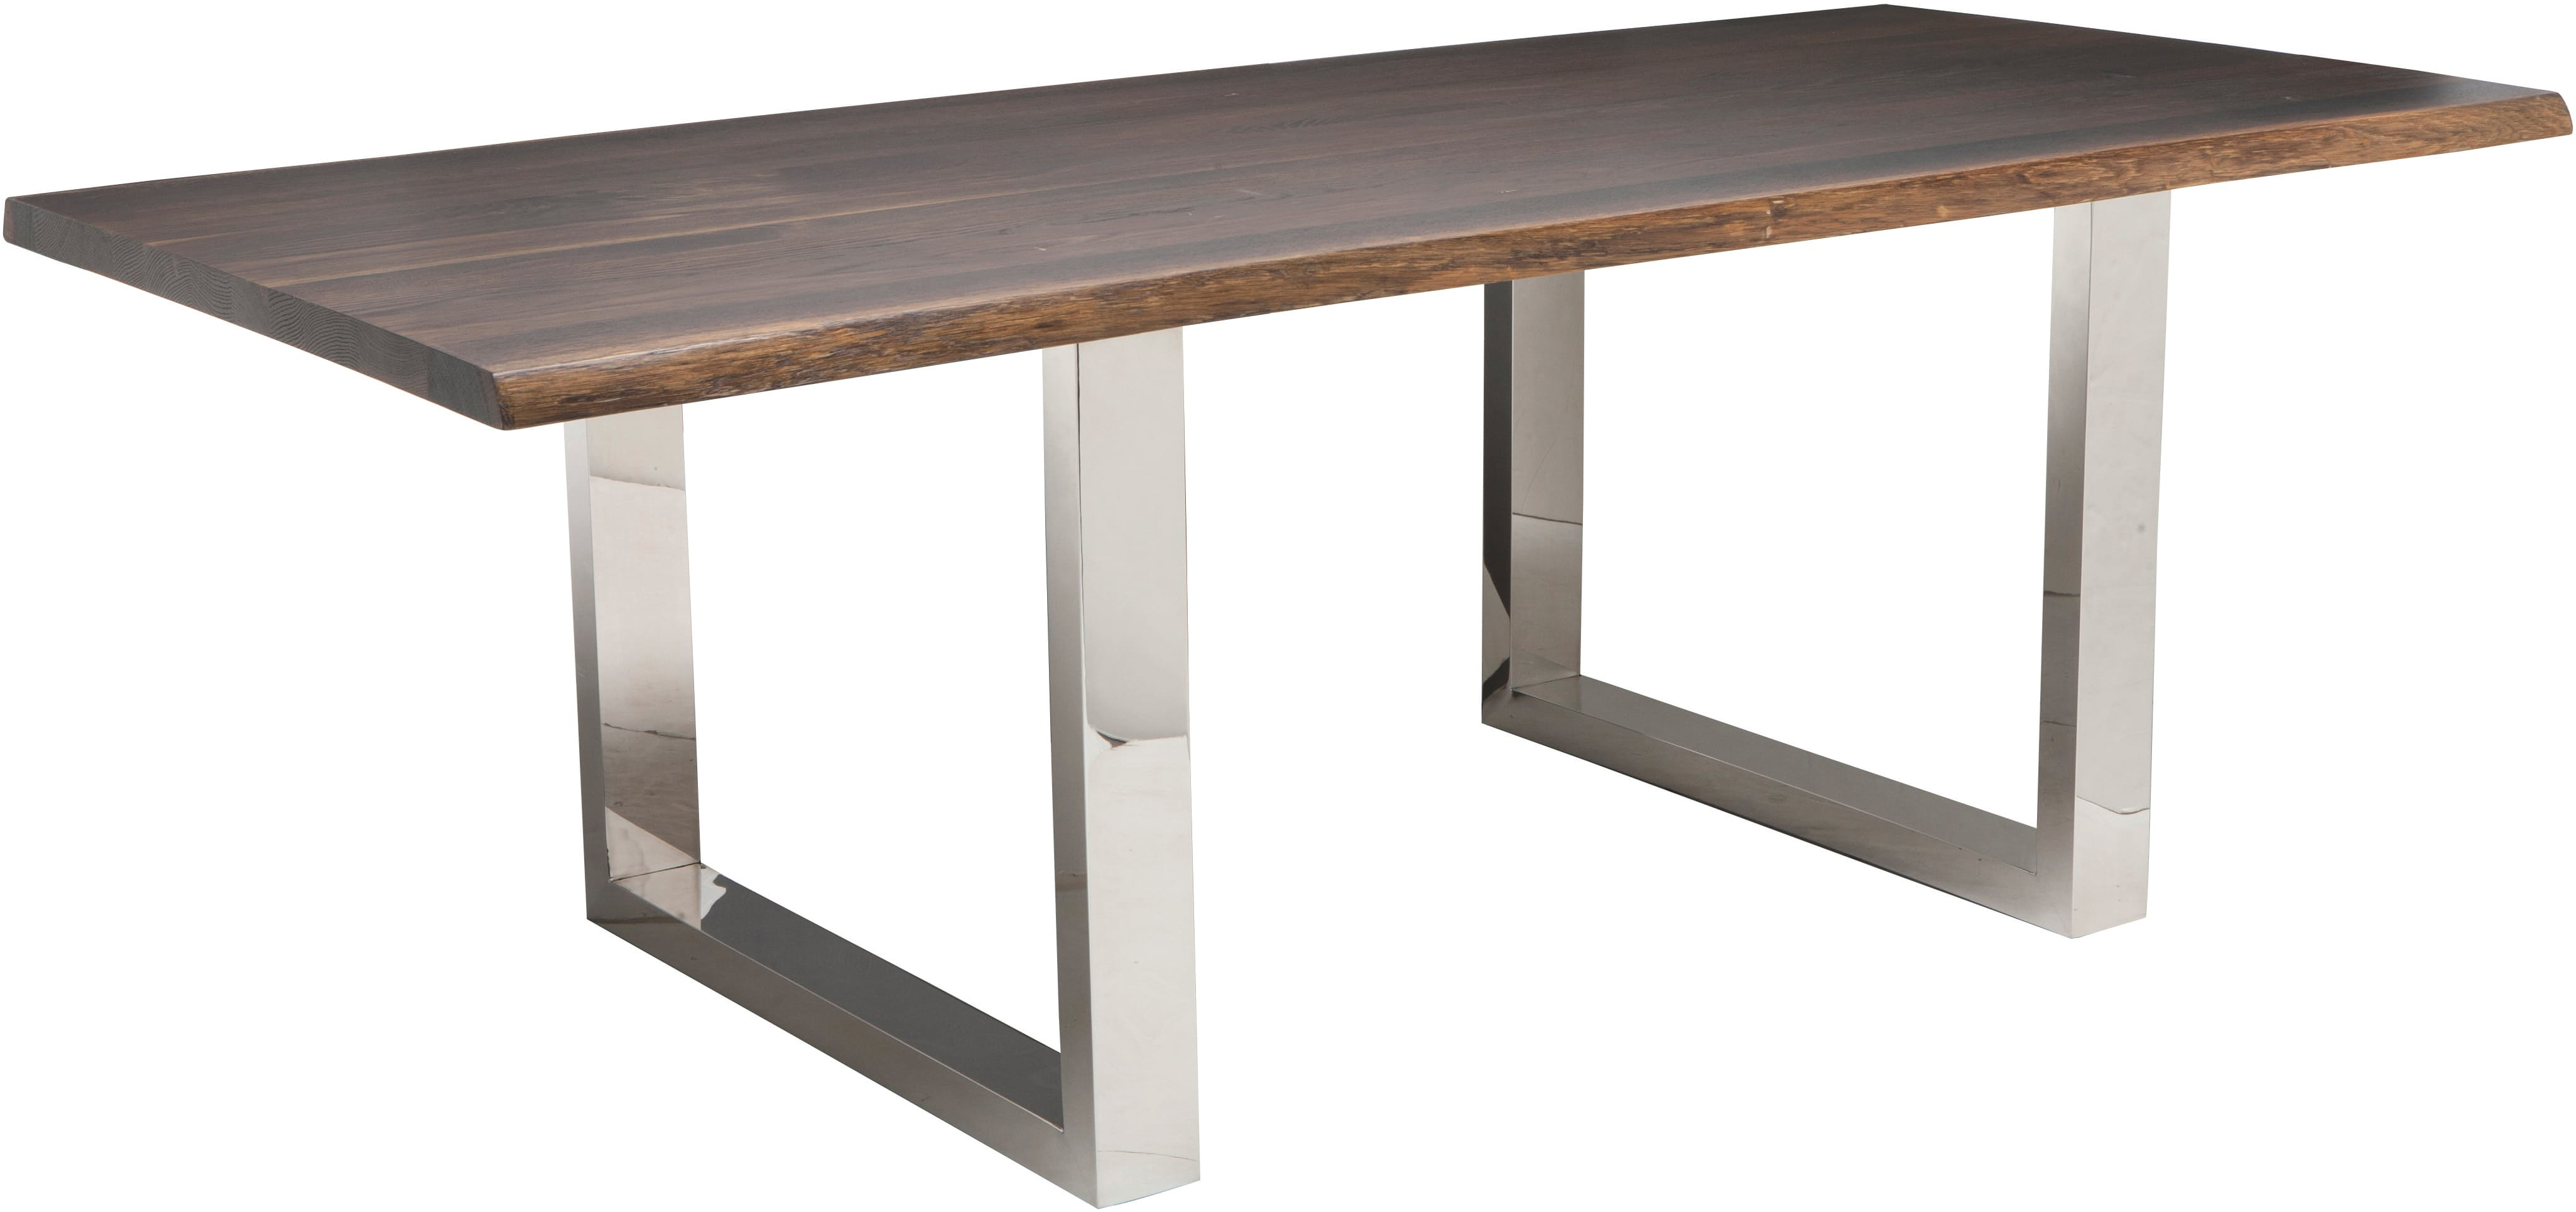 lyon dining table in seared oak finish by nuevo living